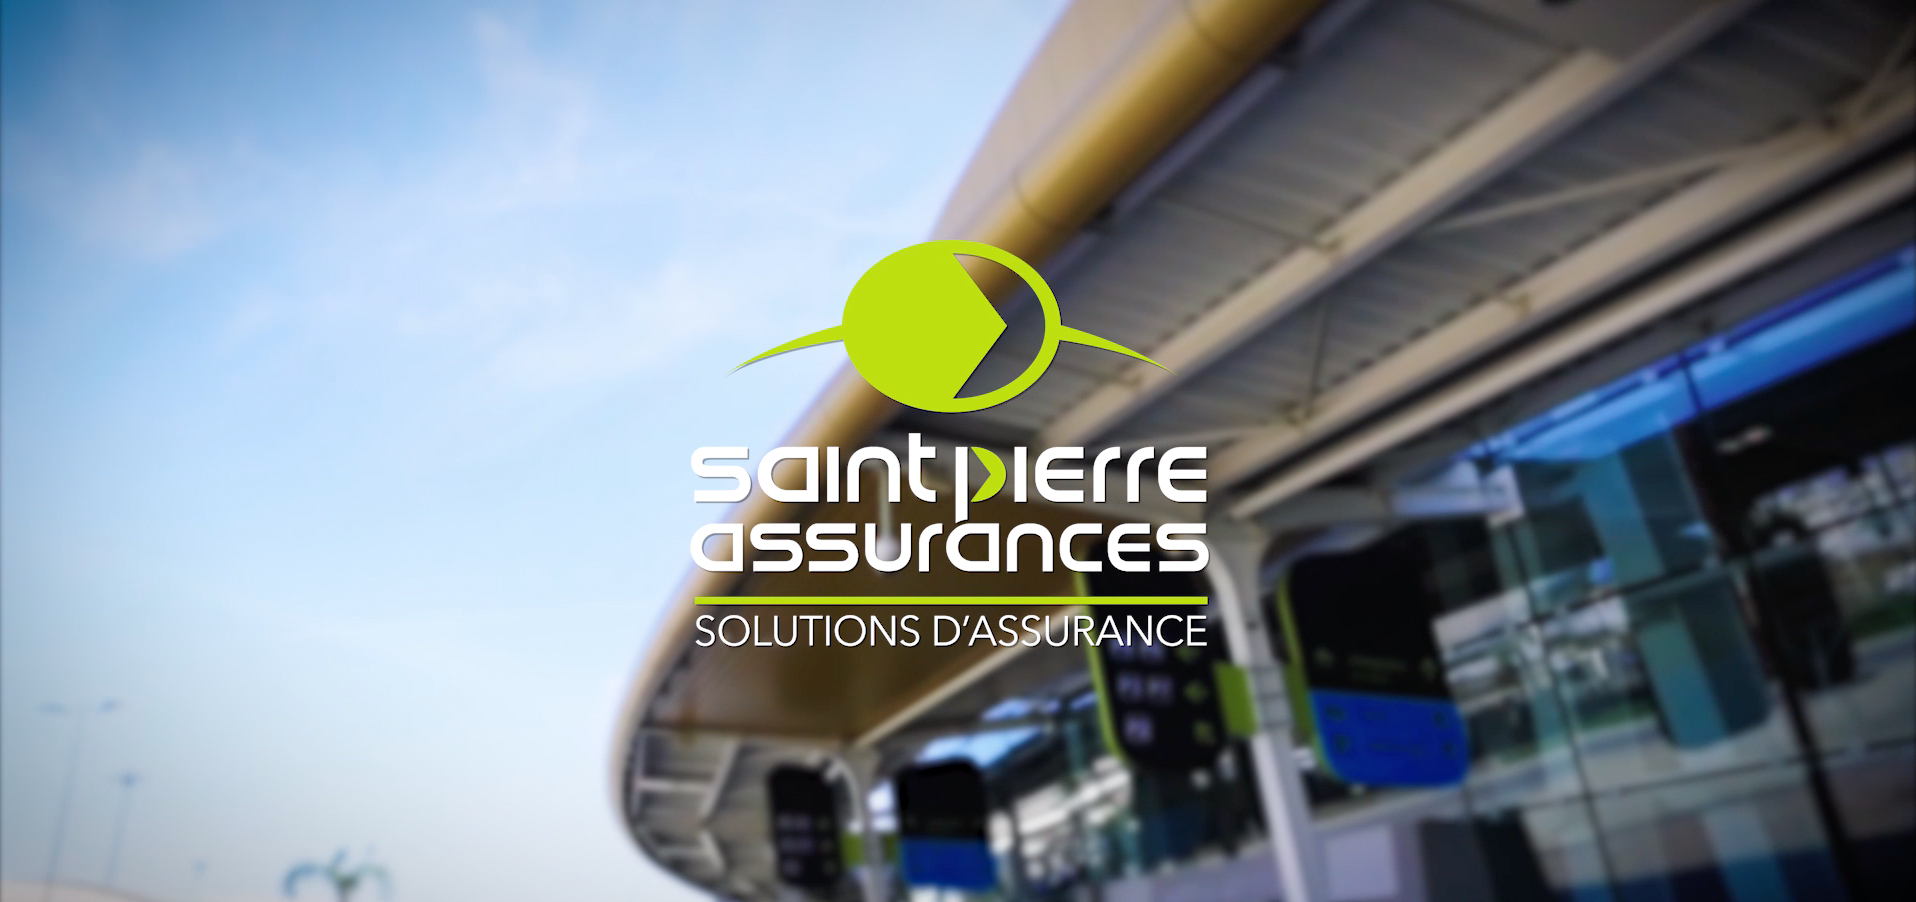 Saint-Pierre Assurances - Convention 2019 - Albufeira